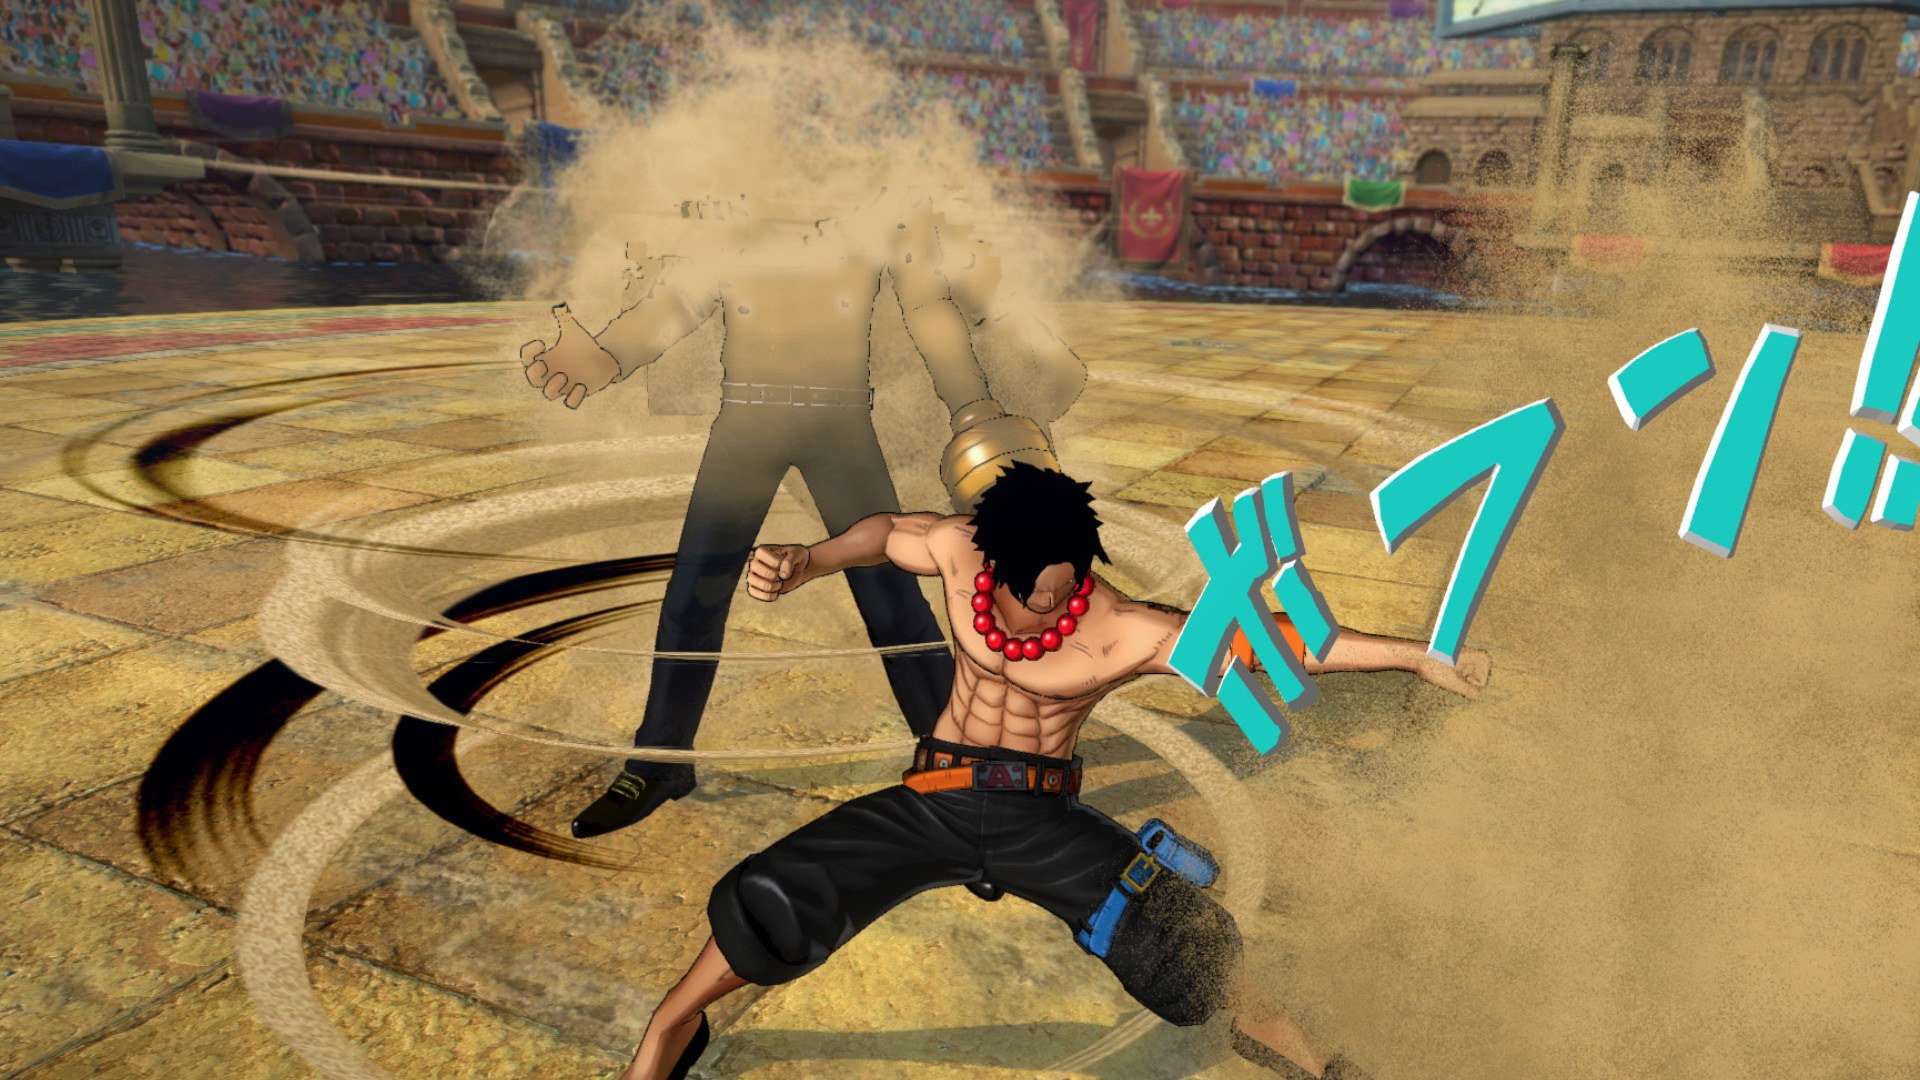 One Piece Burning Blood Steam Screenshots 04